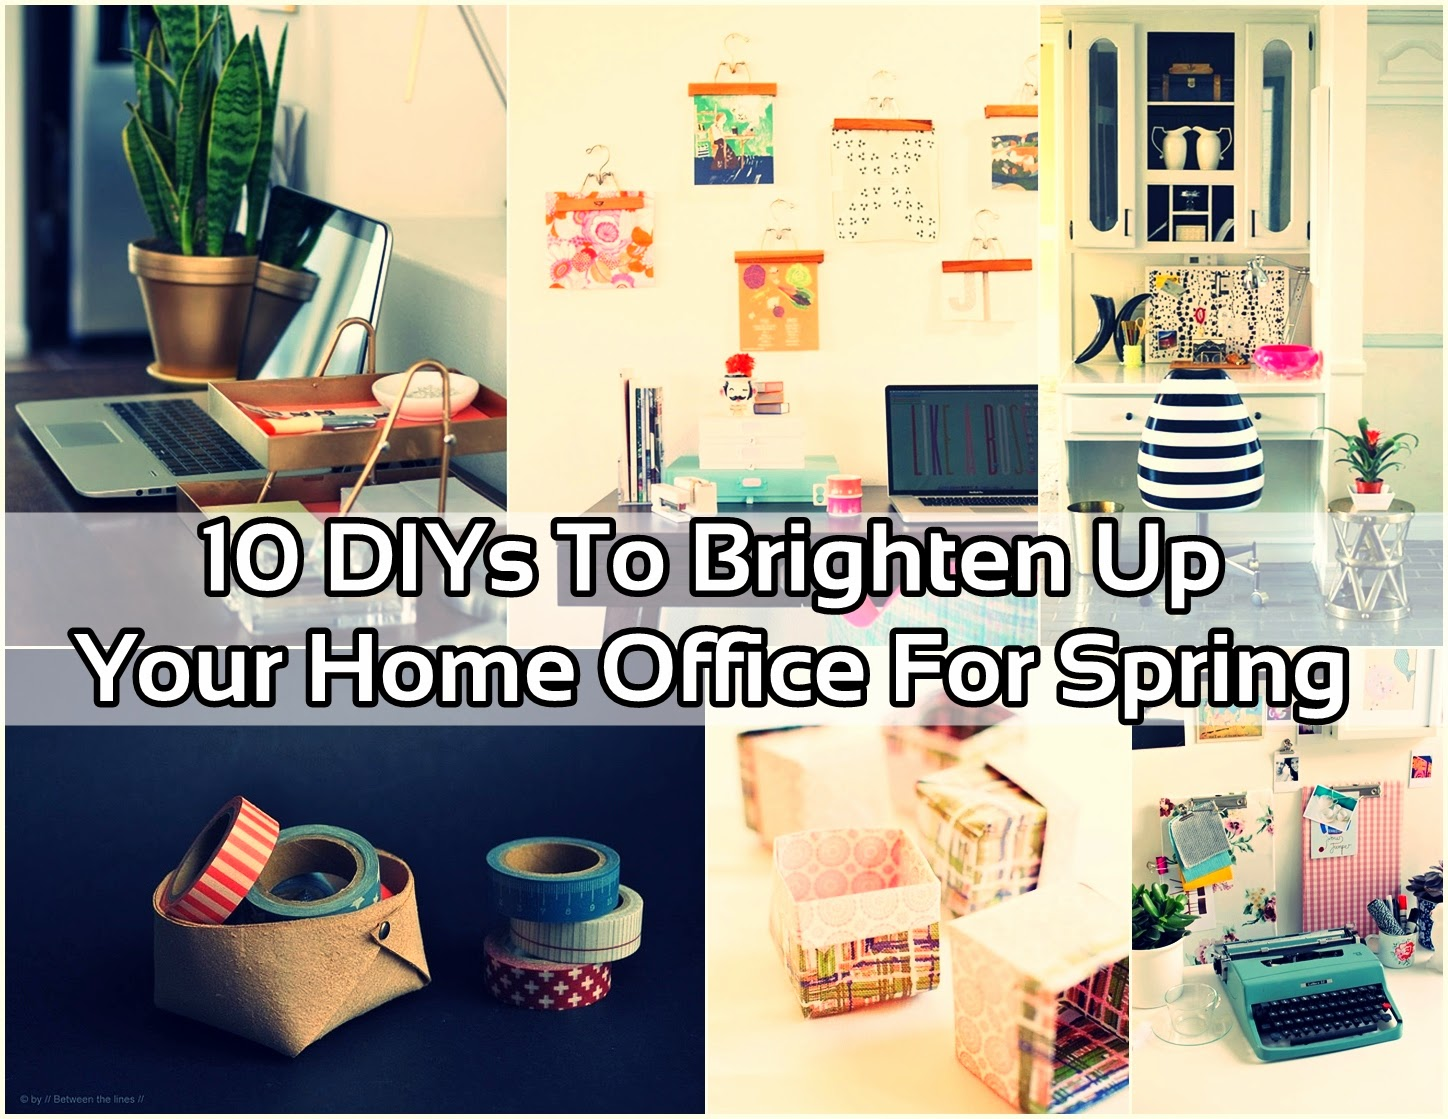 10 DIYS To Brighten Up Your Home Office For Spring